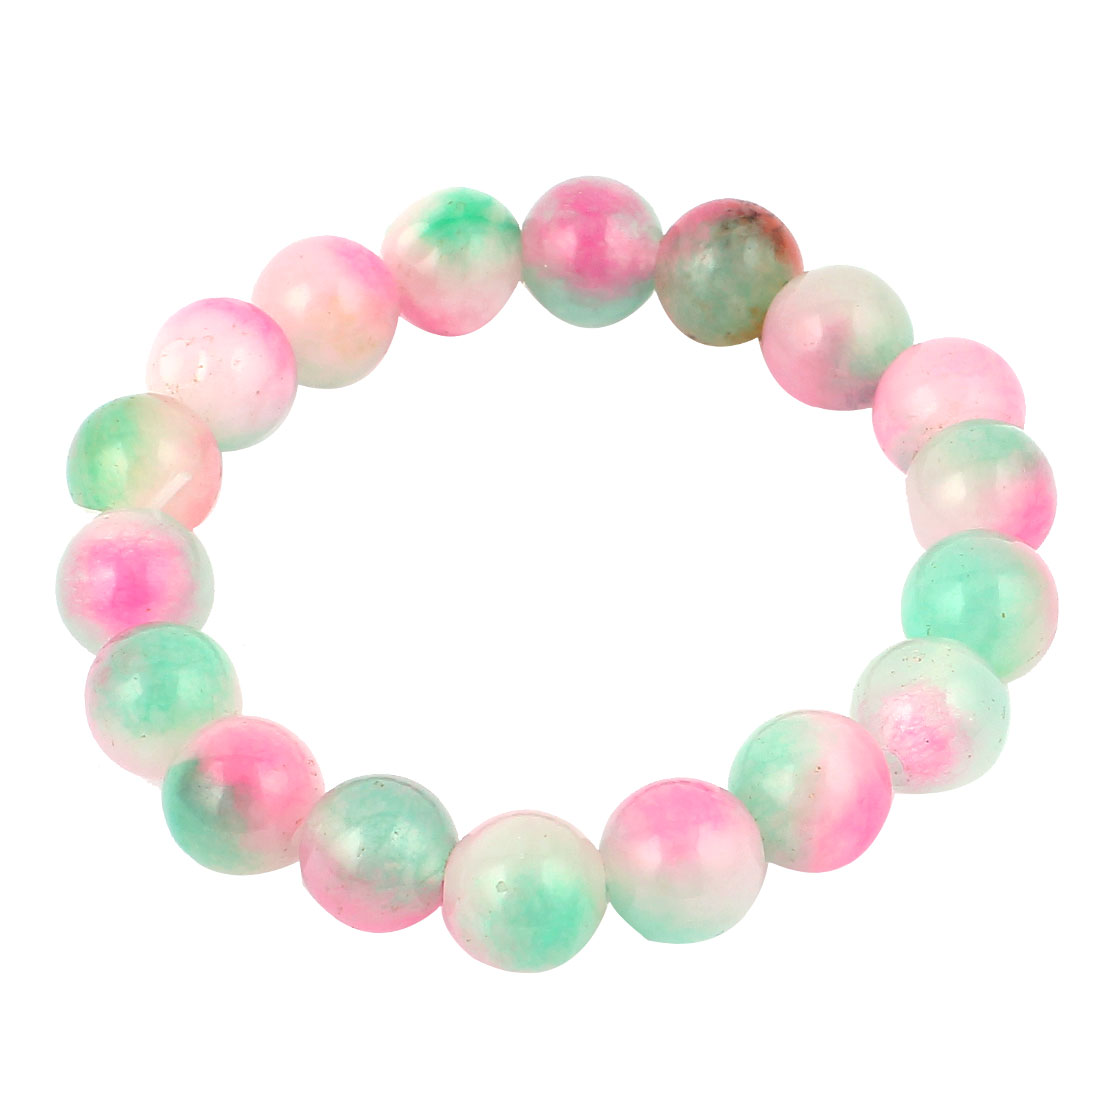 Elasticated 10mm Beads Linked Stretch Bracelet Wrist Decor Light Green